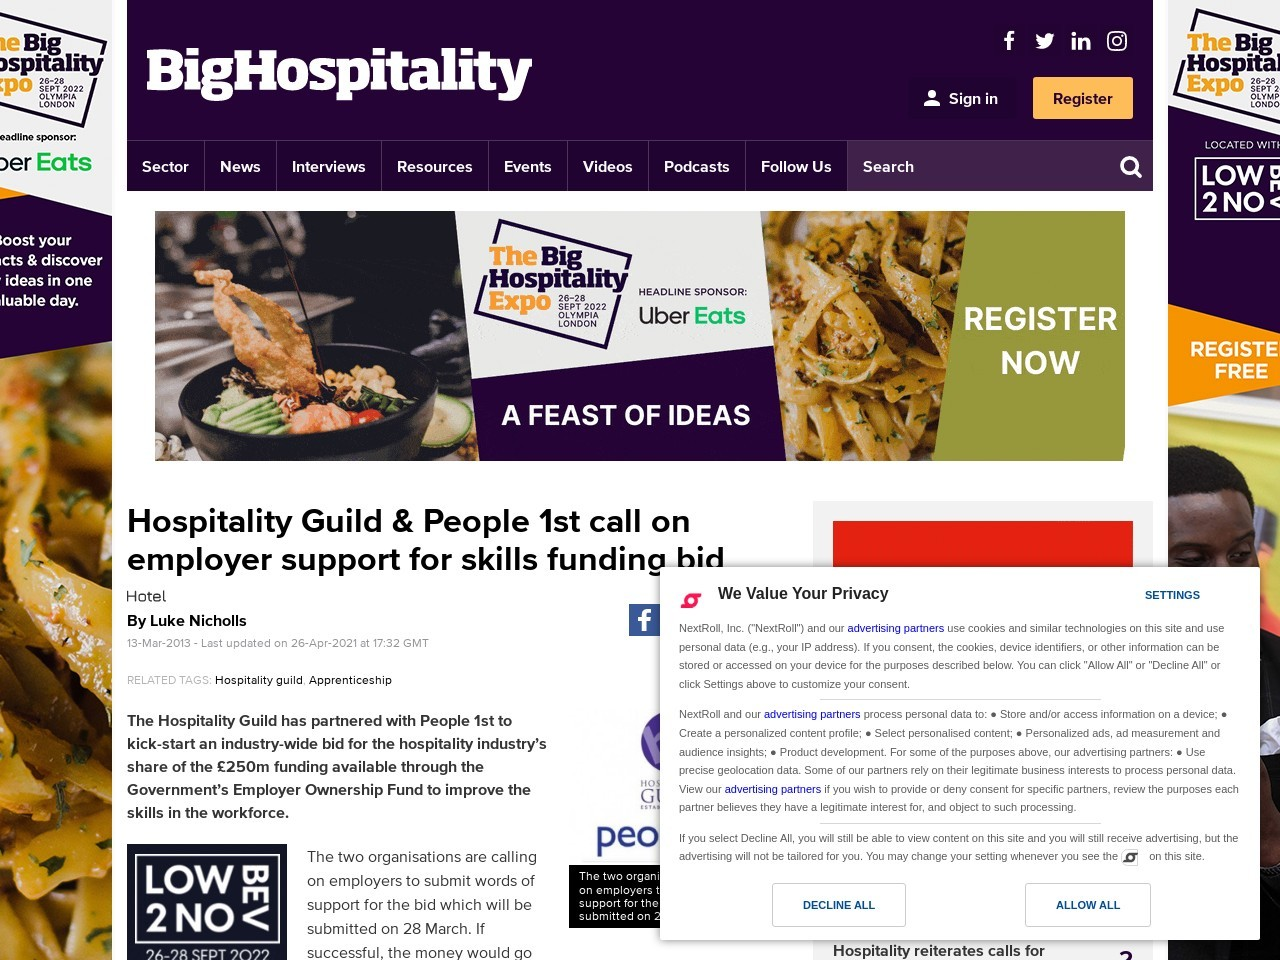 Hospitality Guild & People 1st – Employer Ownership Fund